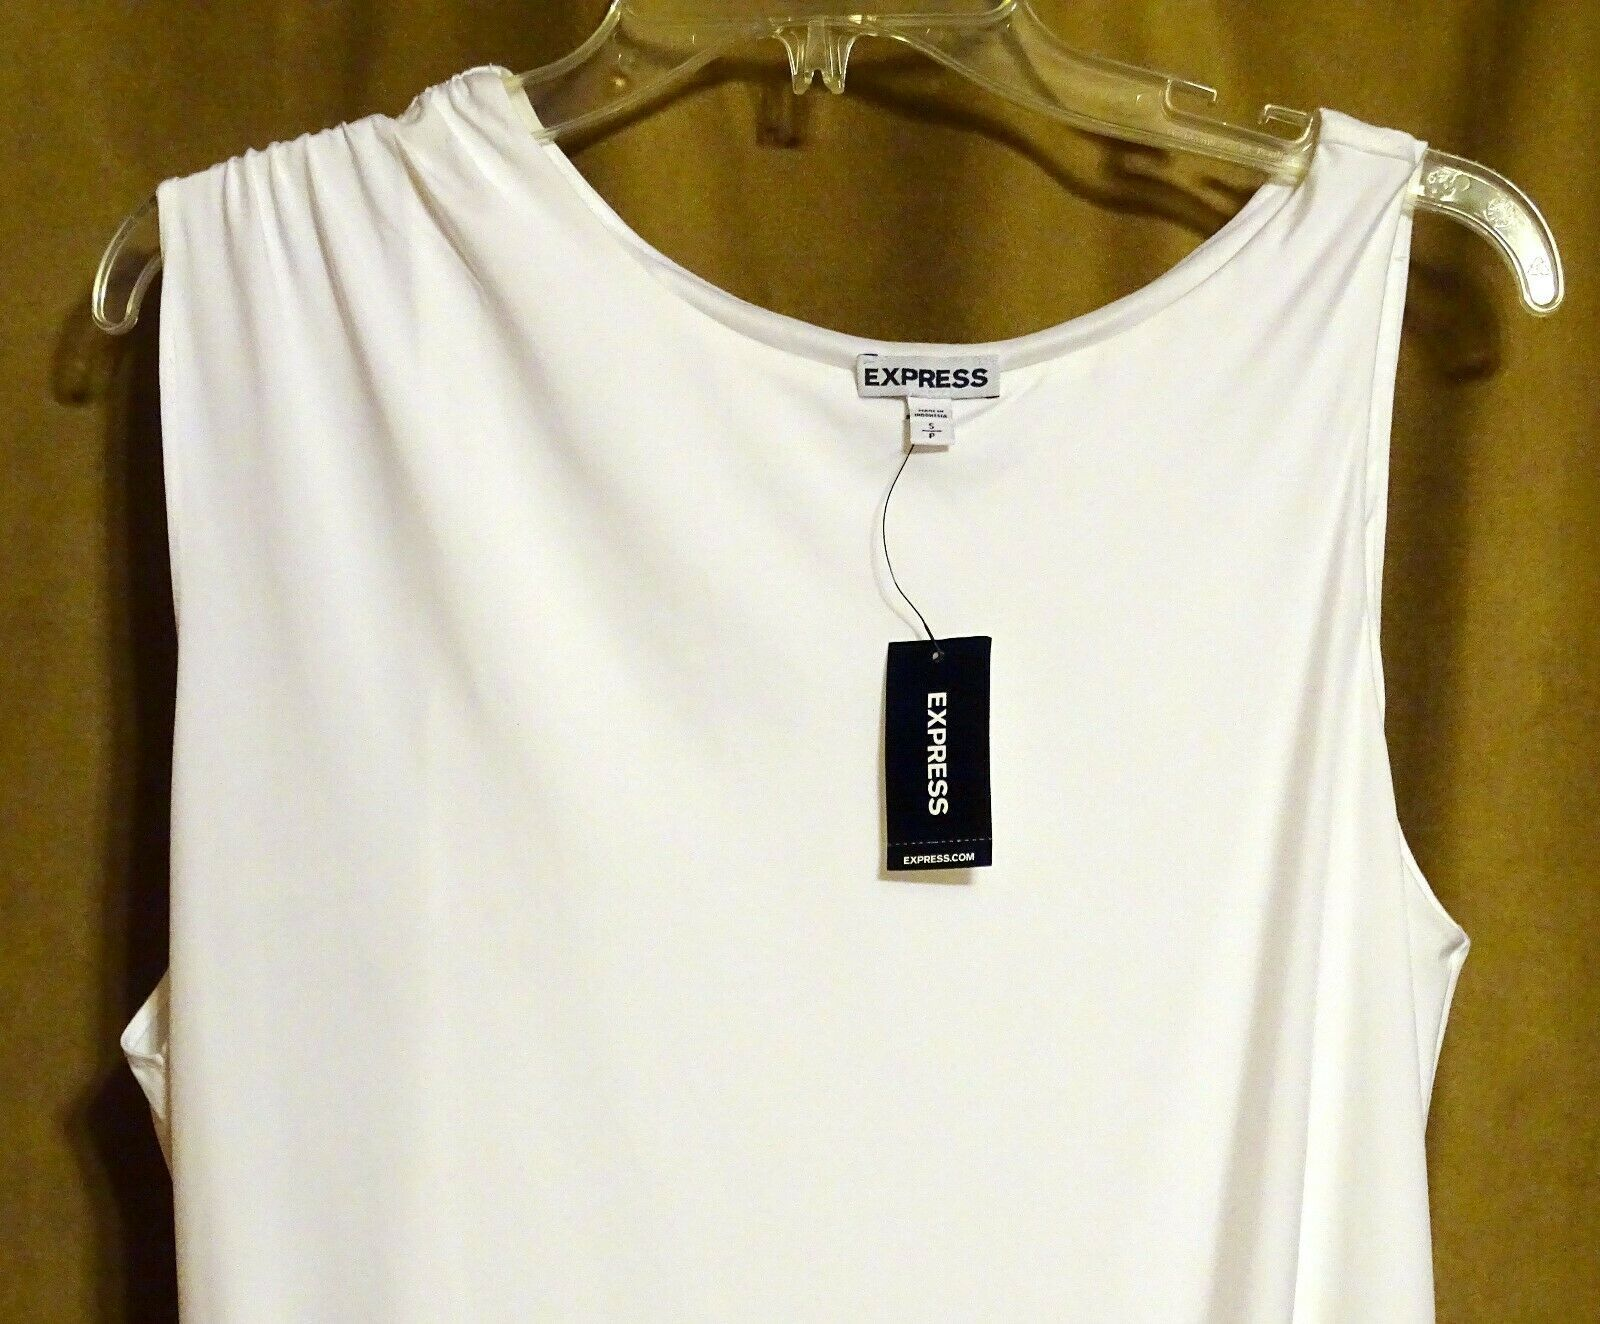 NEW EXPRESS $35 WHITE ASYMMETRIC DRAPED LINED SLEEVELESS DRESSY TOP BLOUSE S image 2